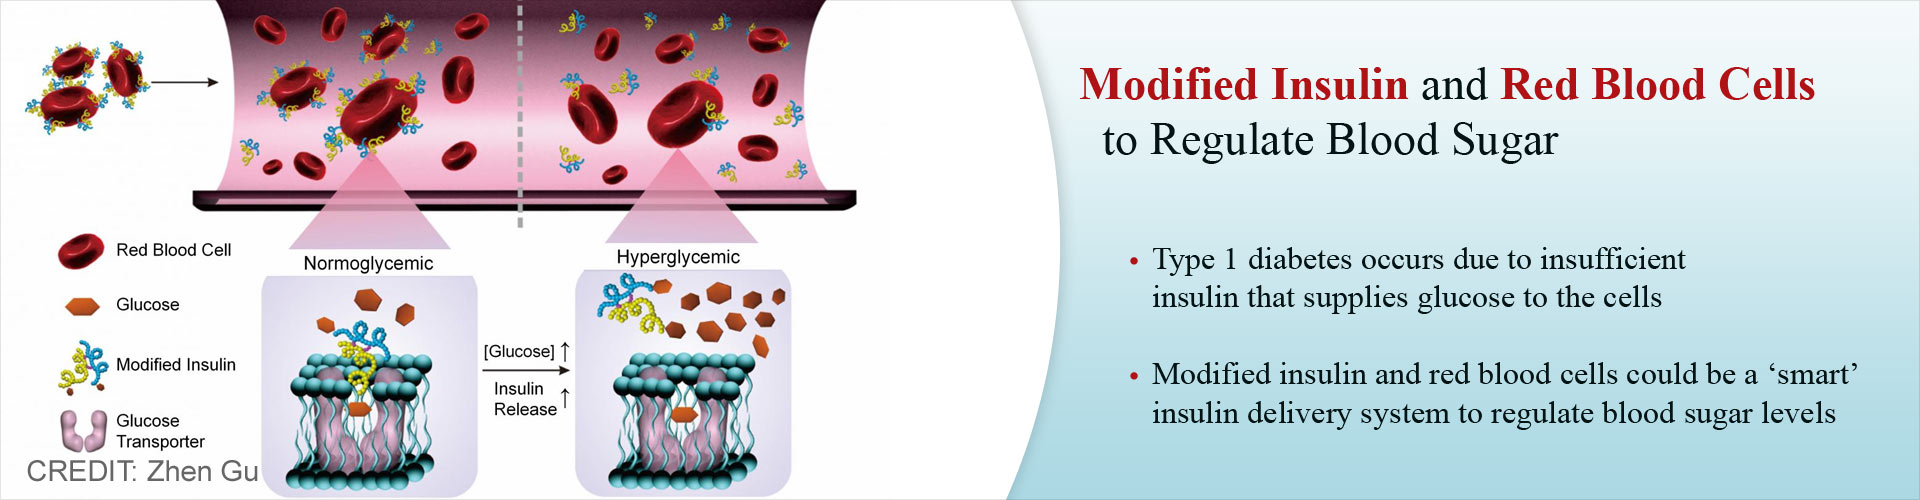 Modified Insulin and Red Blood Cells Could Regulate Blood Sugar Levels